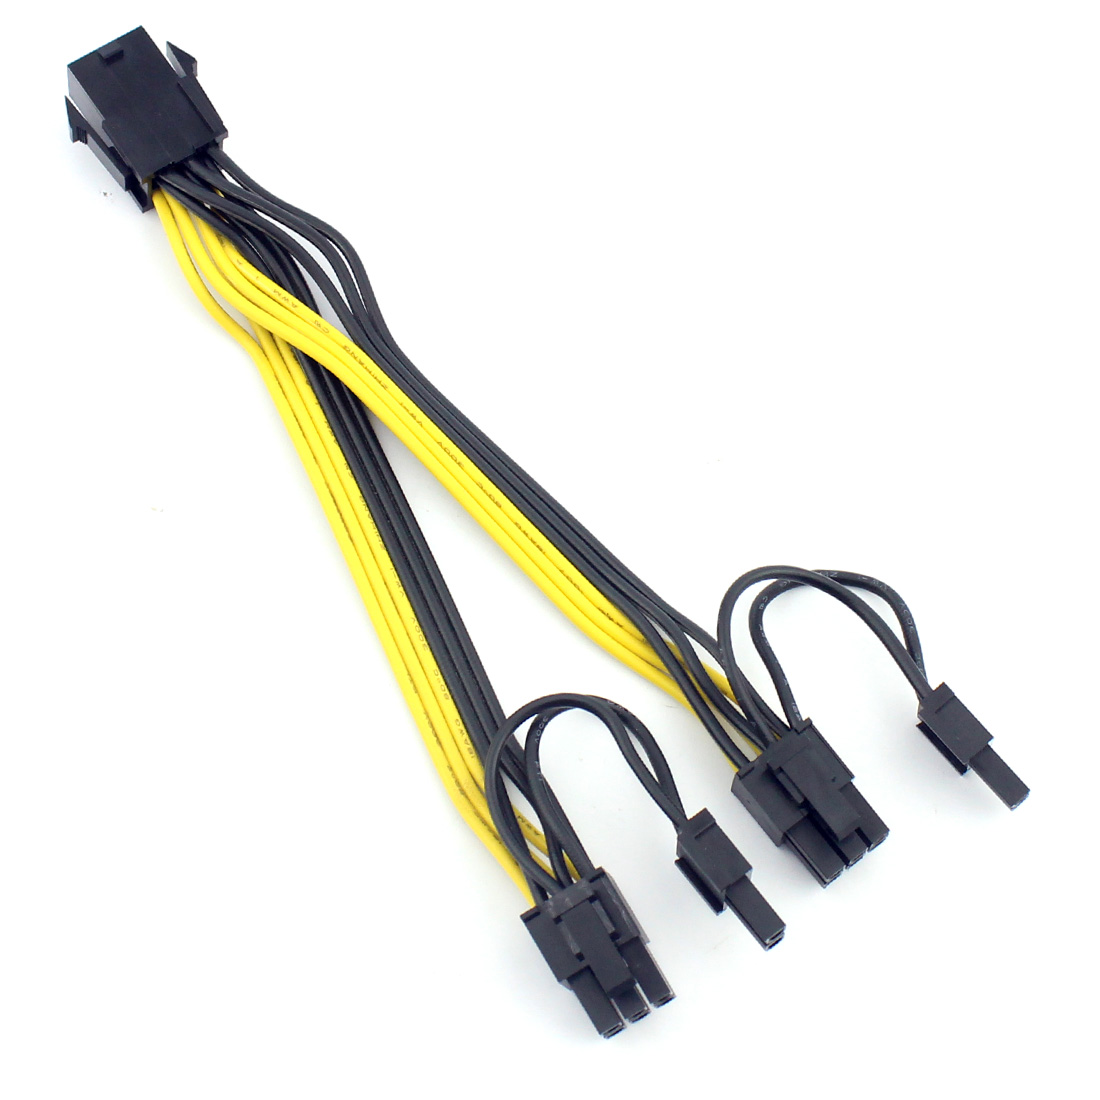 15cm UL 18AWG PCI-E 6pin Female <font><b>to</b></font> <font><b>Dual</b></font> <font><b>8pin</b></font>(<font><b>6</b></font>+2) <font><b>6</b></font>+<font><b>2Pin</b></font> Y-Splitter Video Card Power Supply Adapter <font><b>Cable</b></font>.PCIe GPU Line image